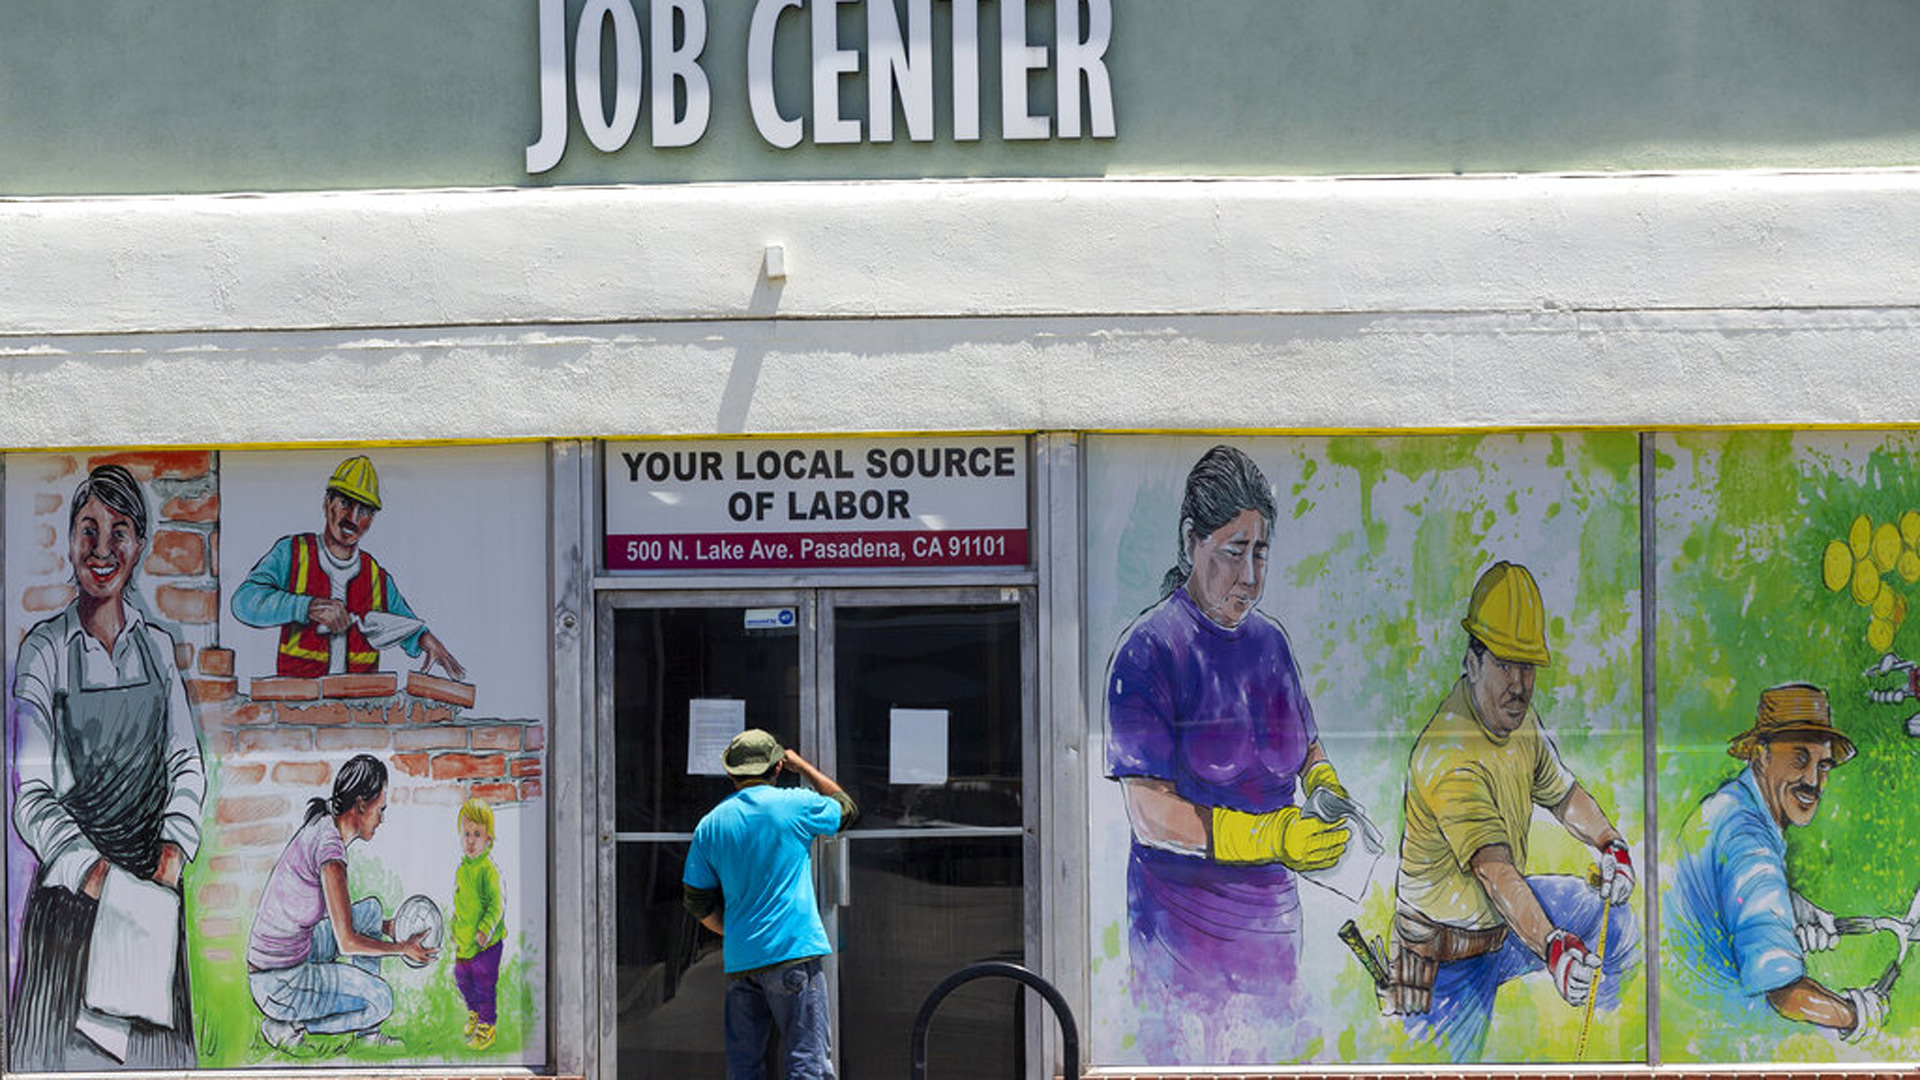 In this May 7, 2020 file photo, a person looks inside the closed doors of the Pasadena Community Job Center in Pasadena, Calif., during the coronavirus outbreak. California's unemployment rate continued to climb in May, reaching 16.3% as businesses continued to lay people off because of a state-at-home order aimed at slowing the spread of the coronavirus that has wrecked the state's economy. (AP Photo/Damian Dovarganes, File)